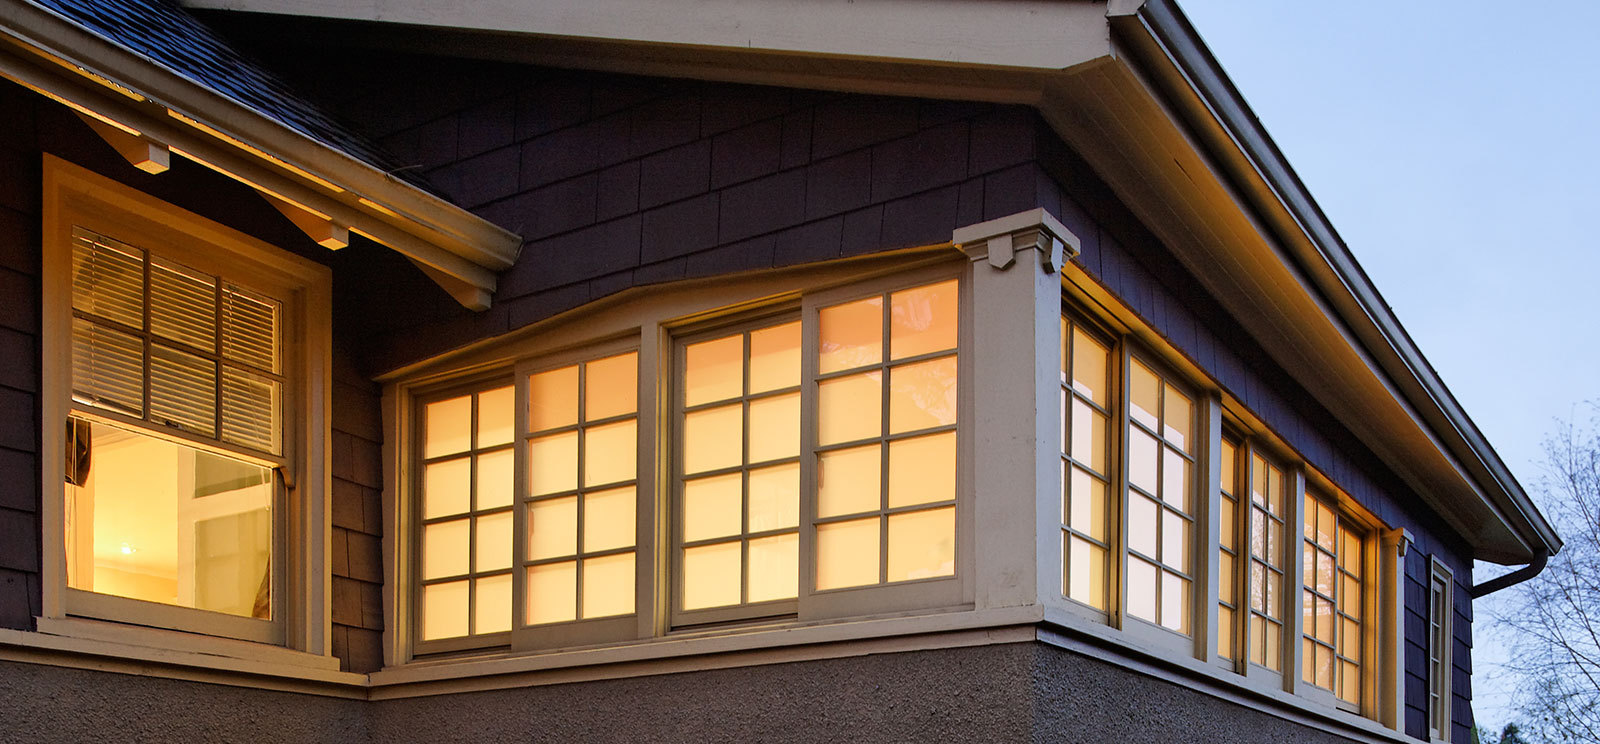 B b window and door is a leed certified company for Local windows and doors